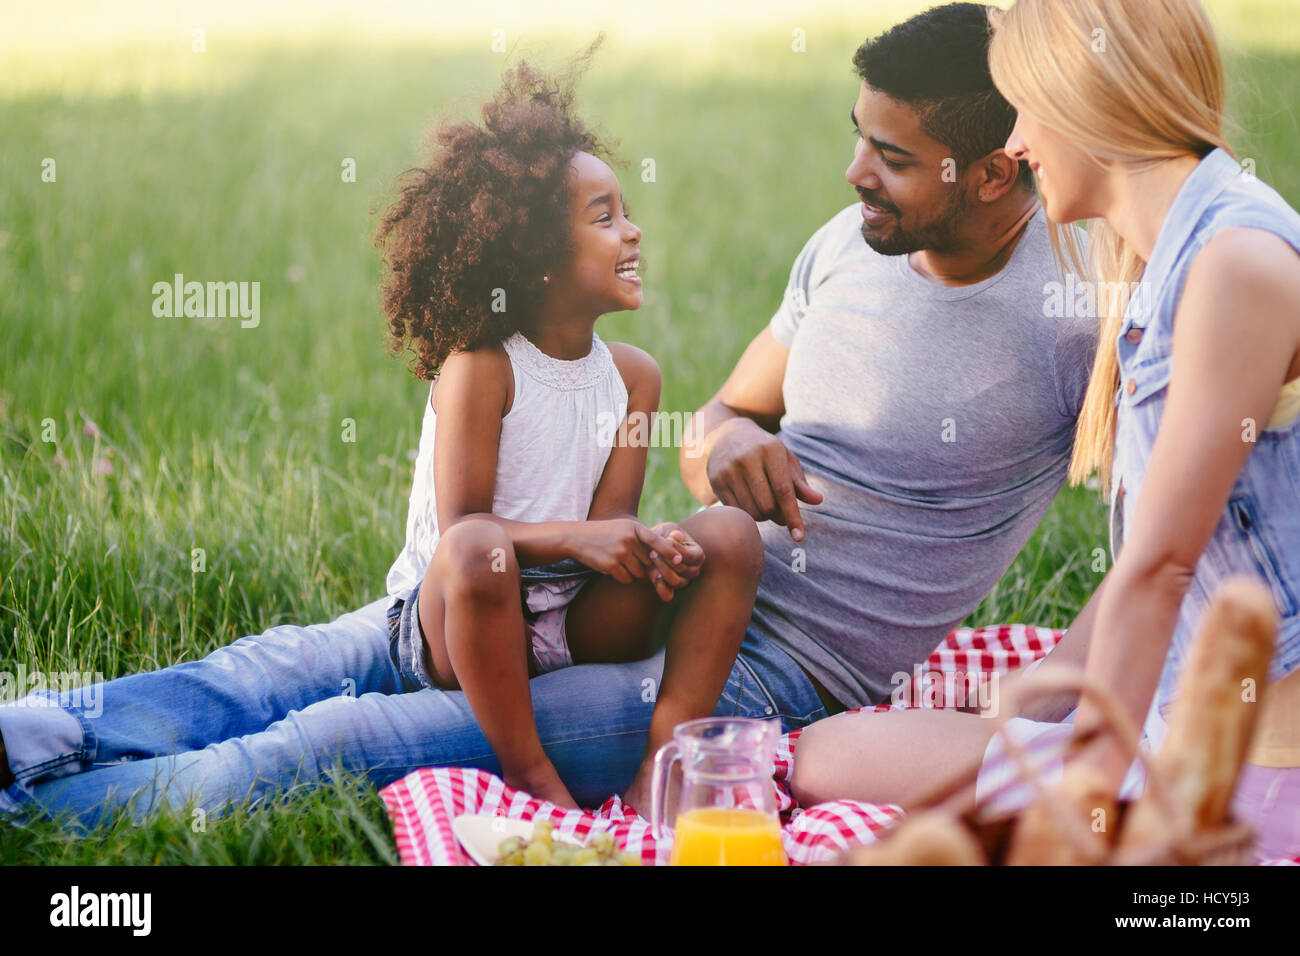 Happy family enjoying picnic in nature - Stock Image